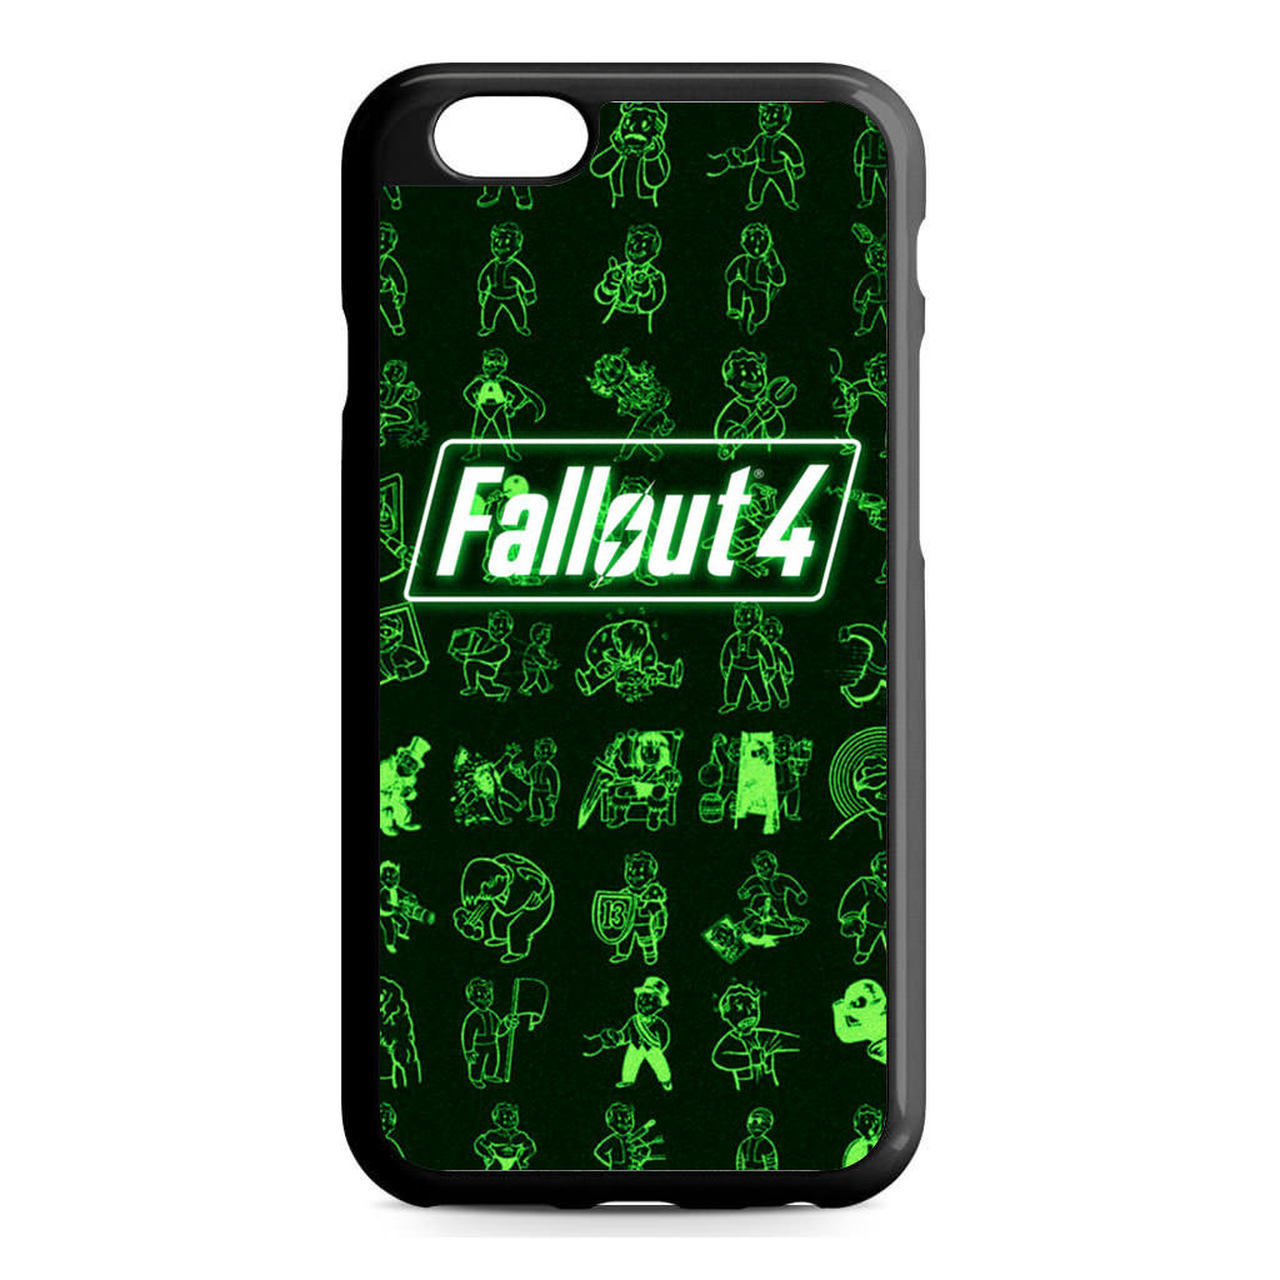 1024x1024 - Fallout iPhone 6 19